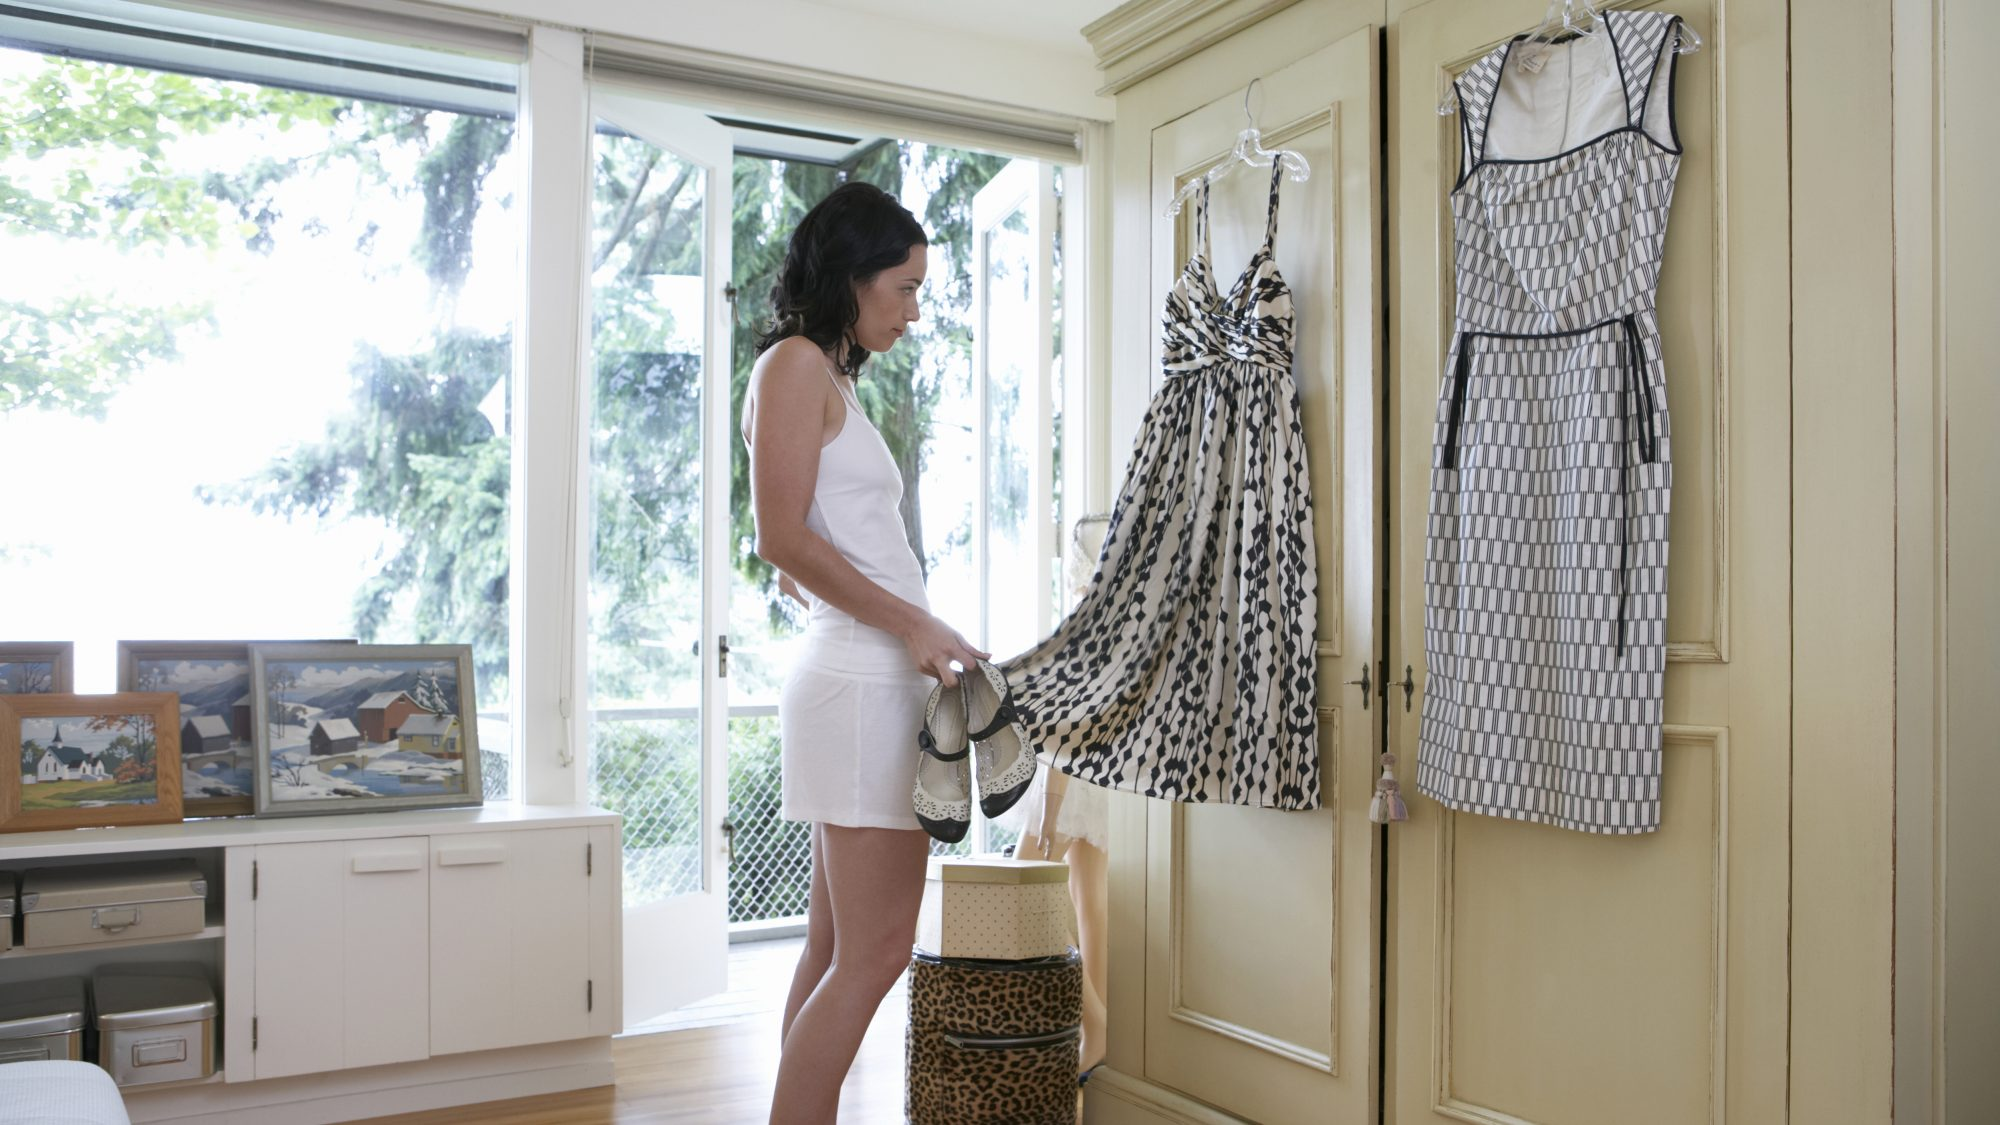 Things to get rid of fall 2020, woman decluttering closet